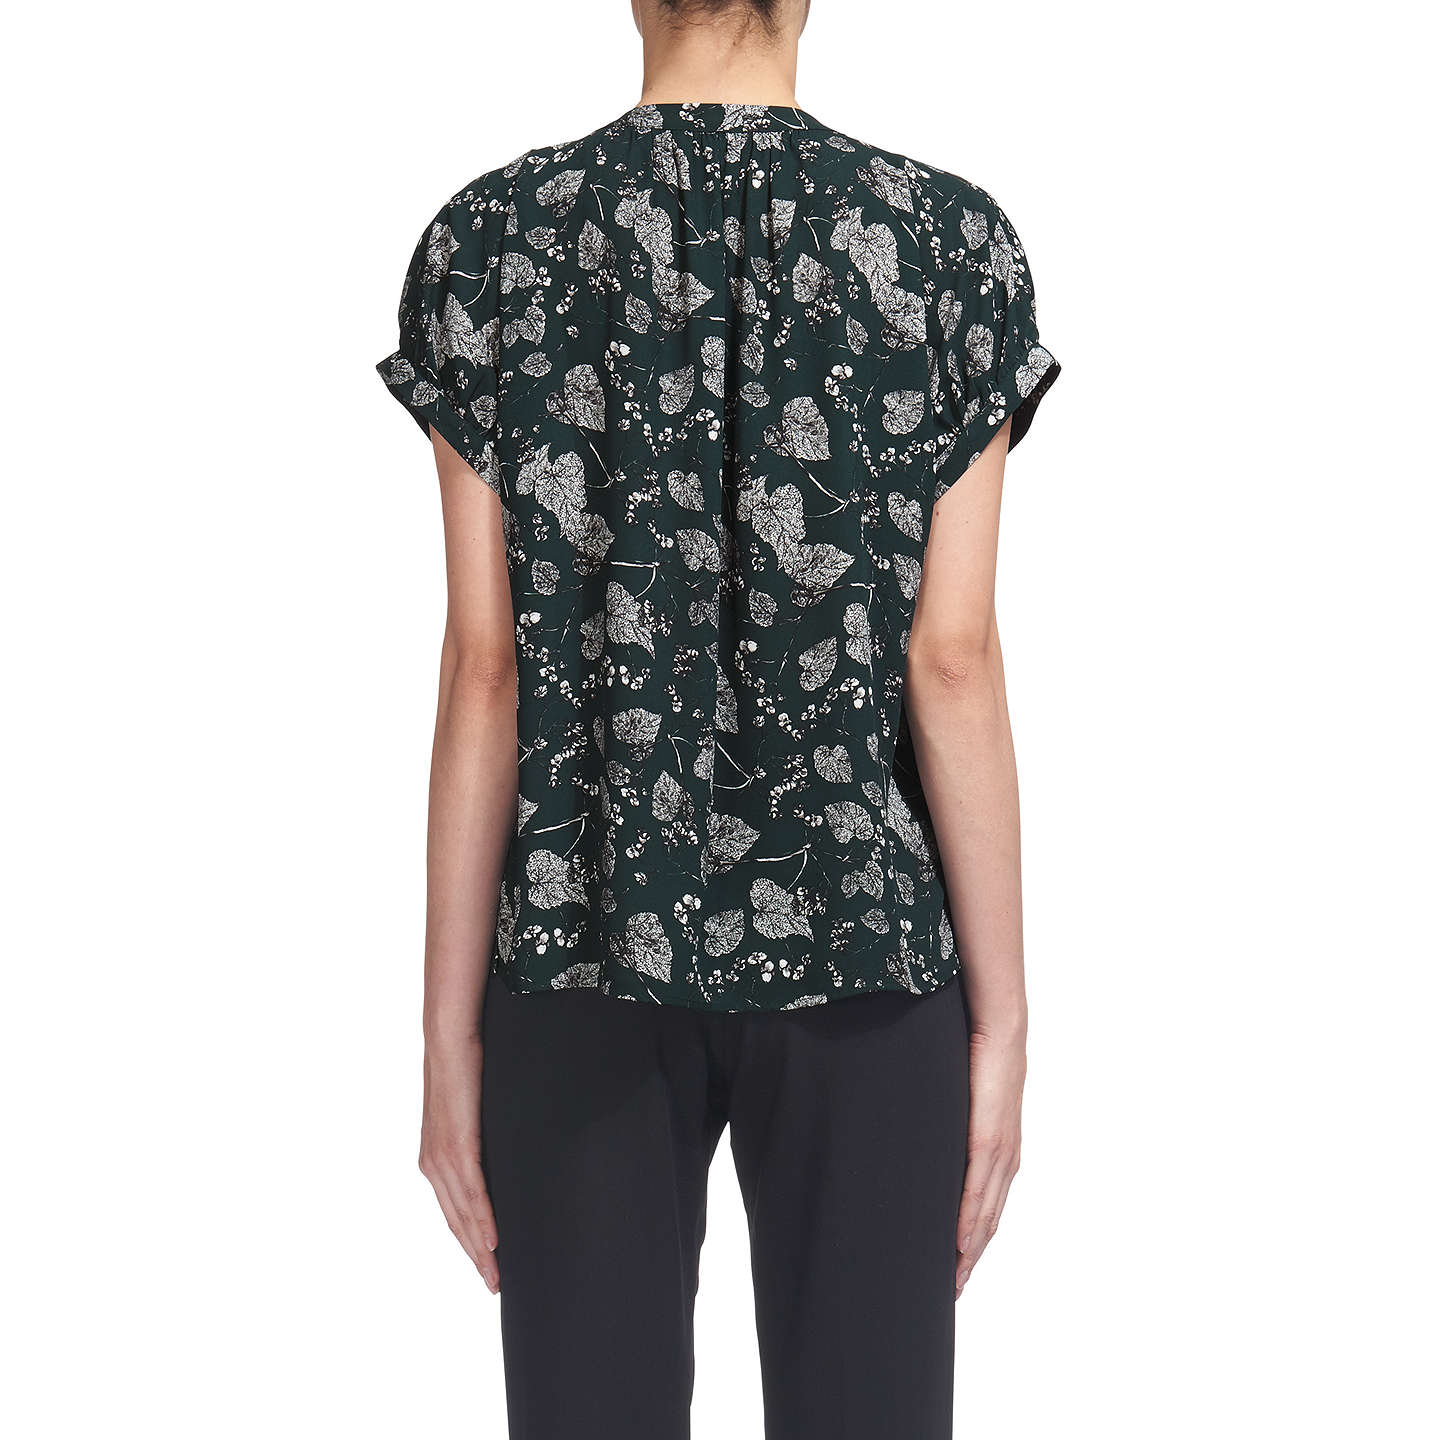 BuyWhistles Justine Autumn Leaf Blouse, Green, XS Online at johnlewis.com